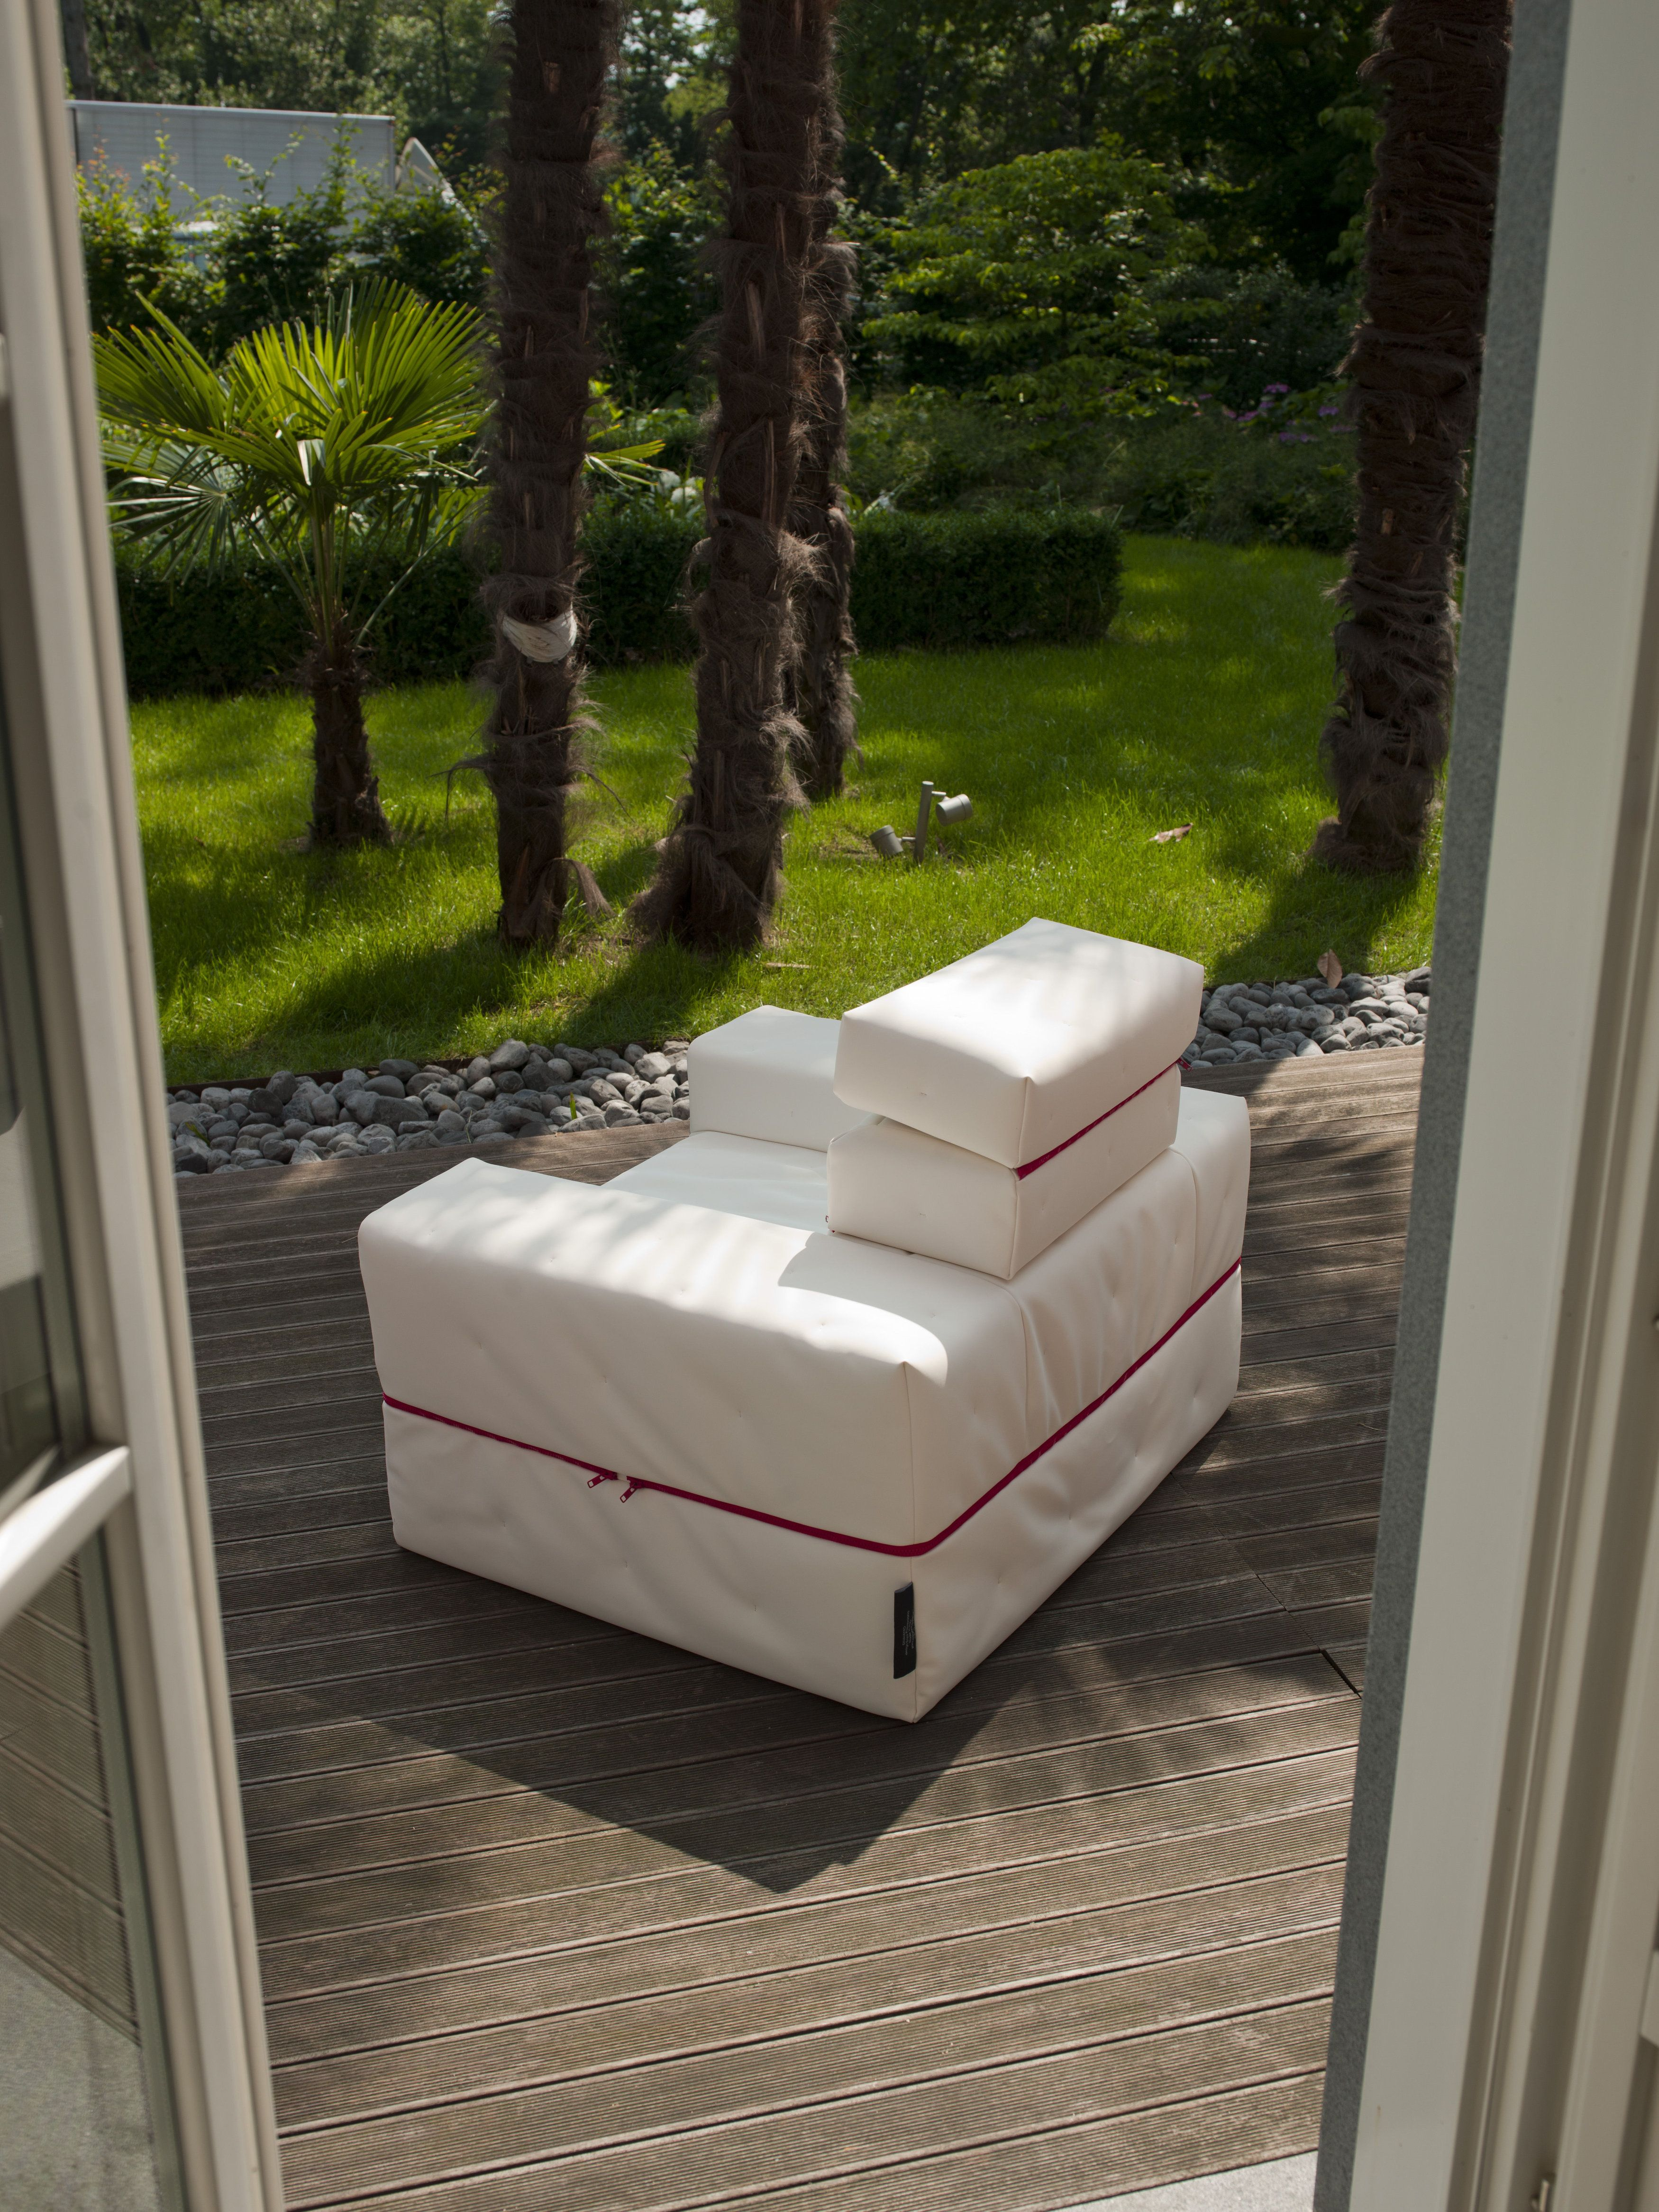 Divaletto Sofa Sofa Bed And Armchair By Milano Bedding Inspirations For The Sea House Bed Sofa Bed E Outdoor Decor